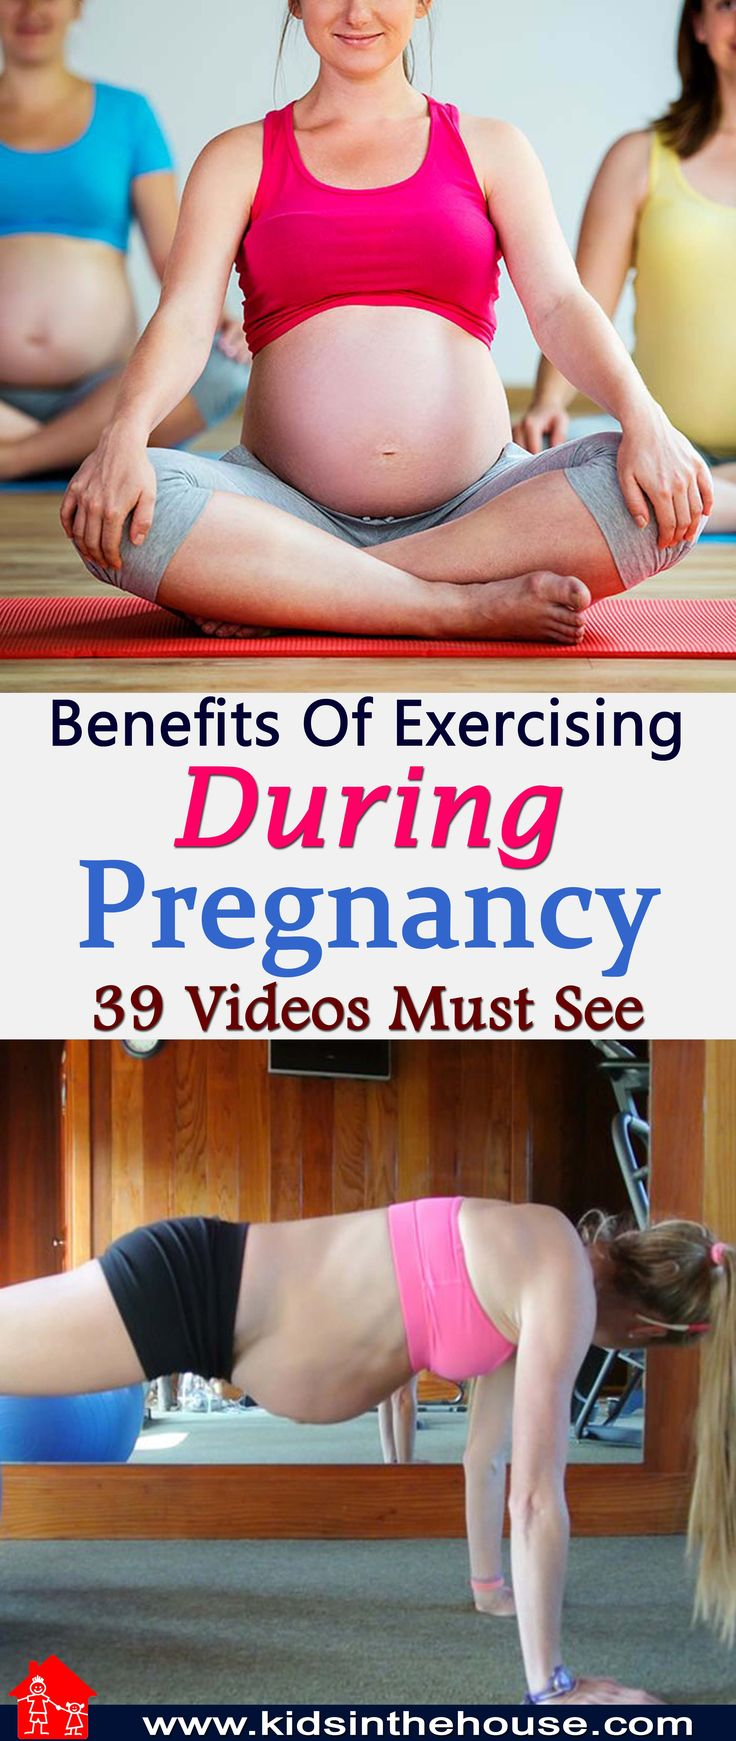 Exercise is really important during pregnancy. Things like swimming, walking, even prenatal yoga can be really beneficial to a pregnant mom. │Baby health │Baby │Childcare │Children │Pregnancy │Labor │Workout │Fitness #Baby health #Baby #Childcare #Children #Pregnancy #Labor #Workout #Fitness